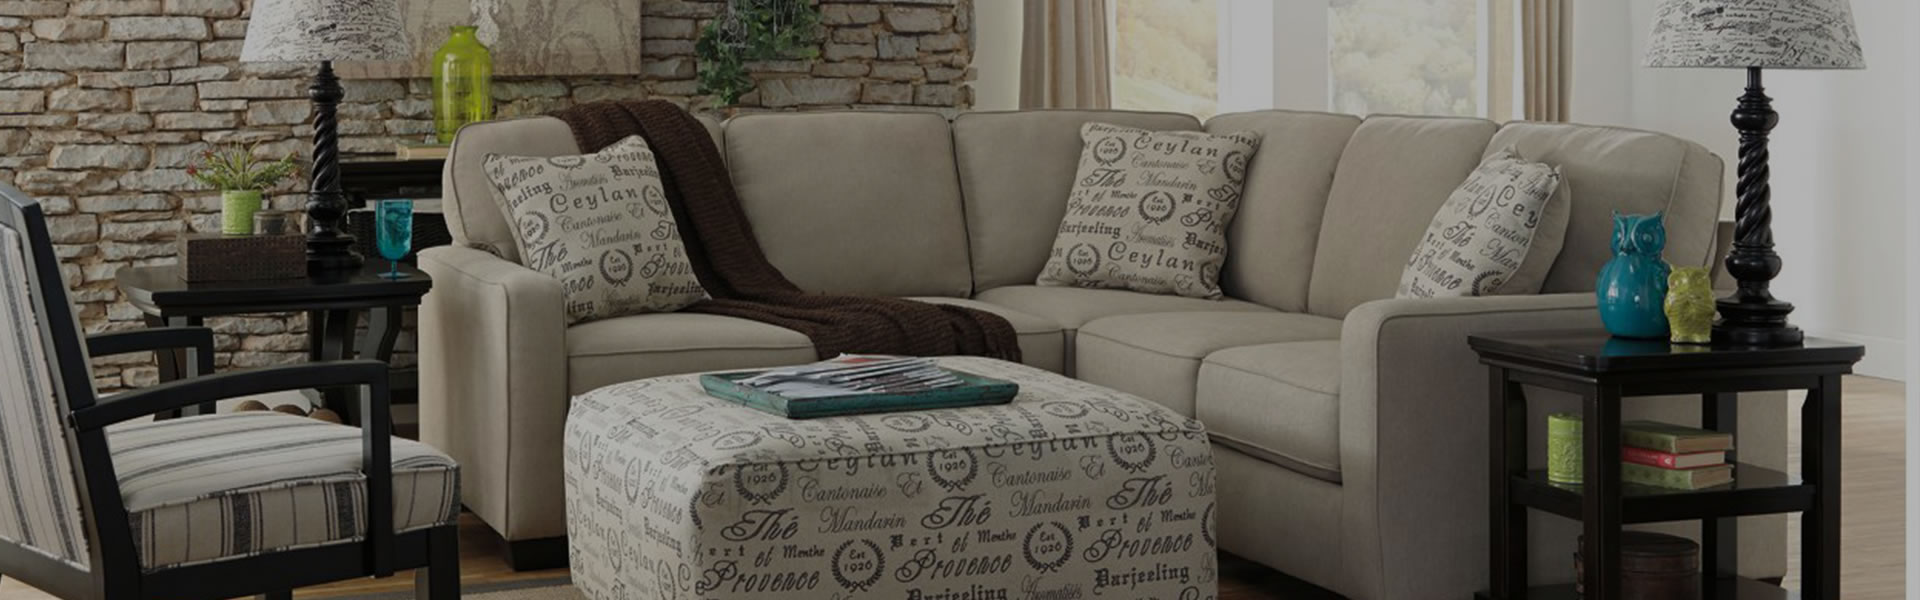 Steptoes Sofas Cyprus Home Furniture Store 1